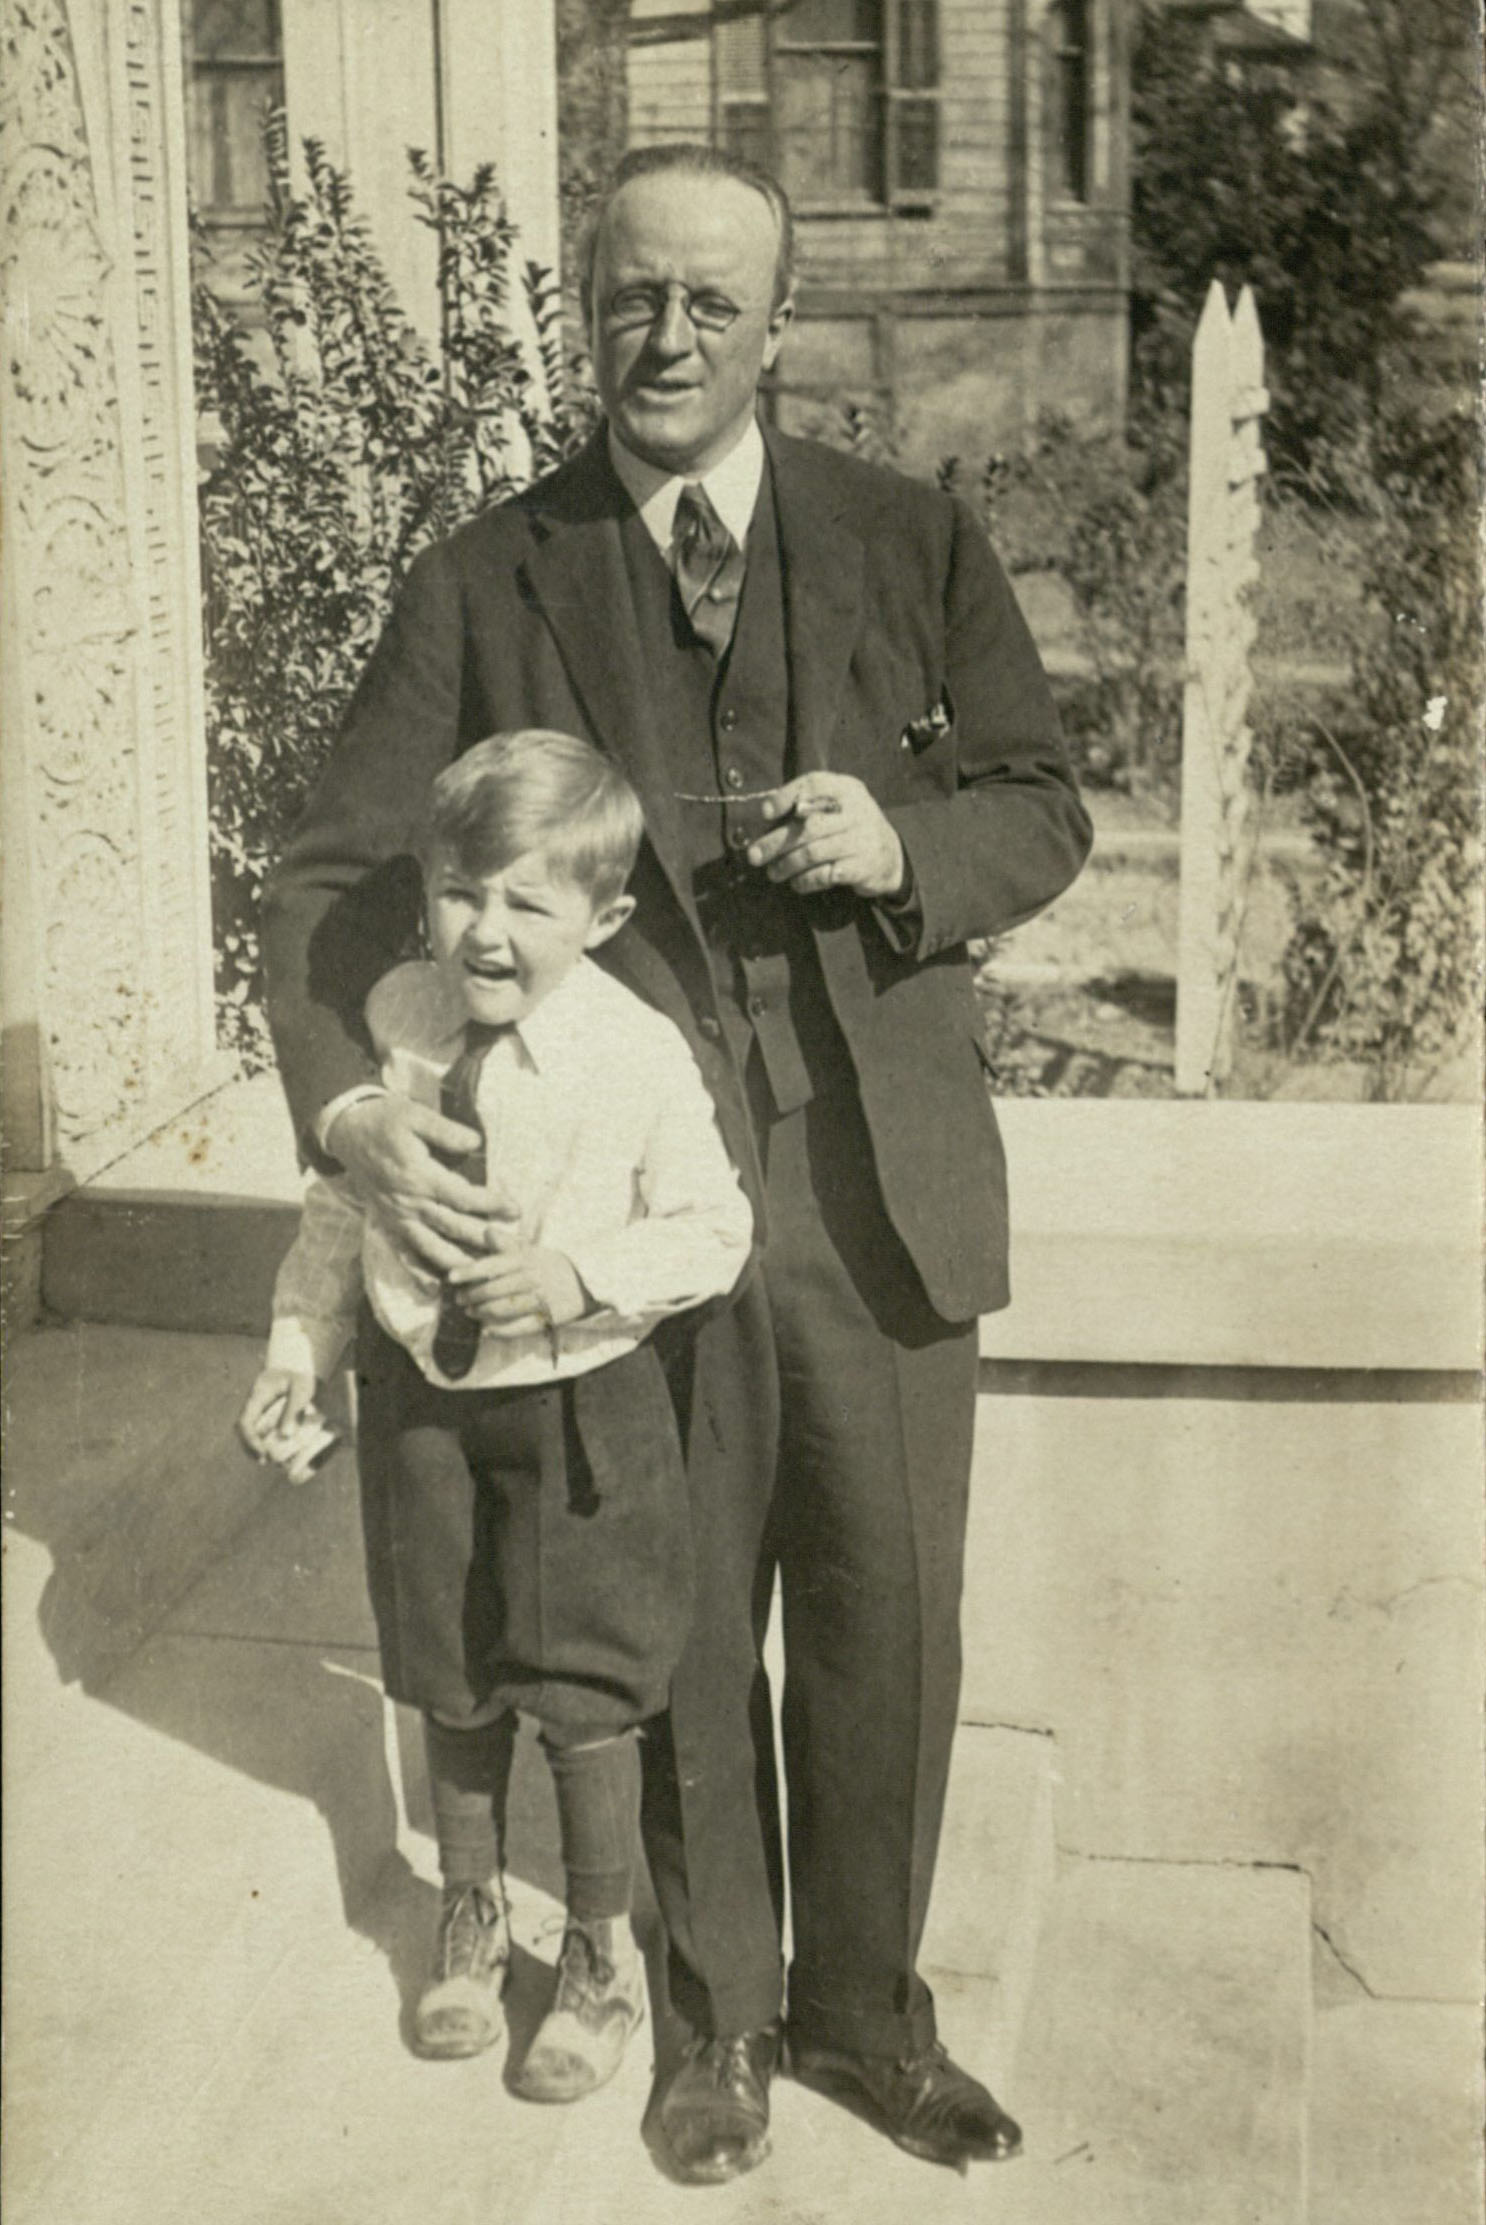 Carl Lovelace with one of his sons outside their home in Waco, undated